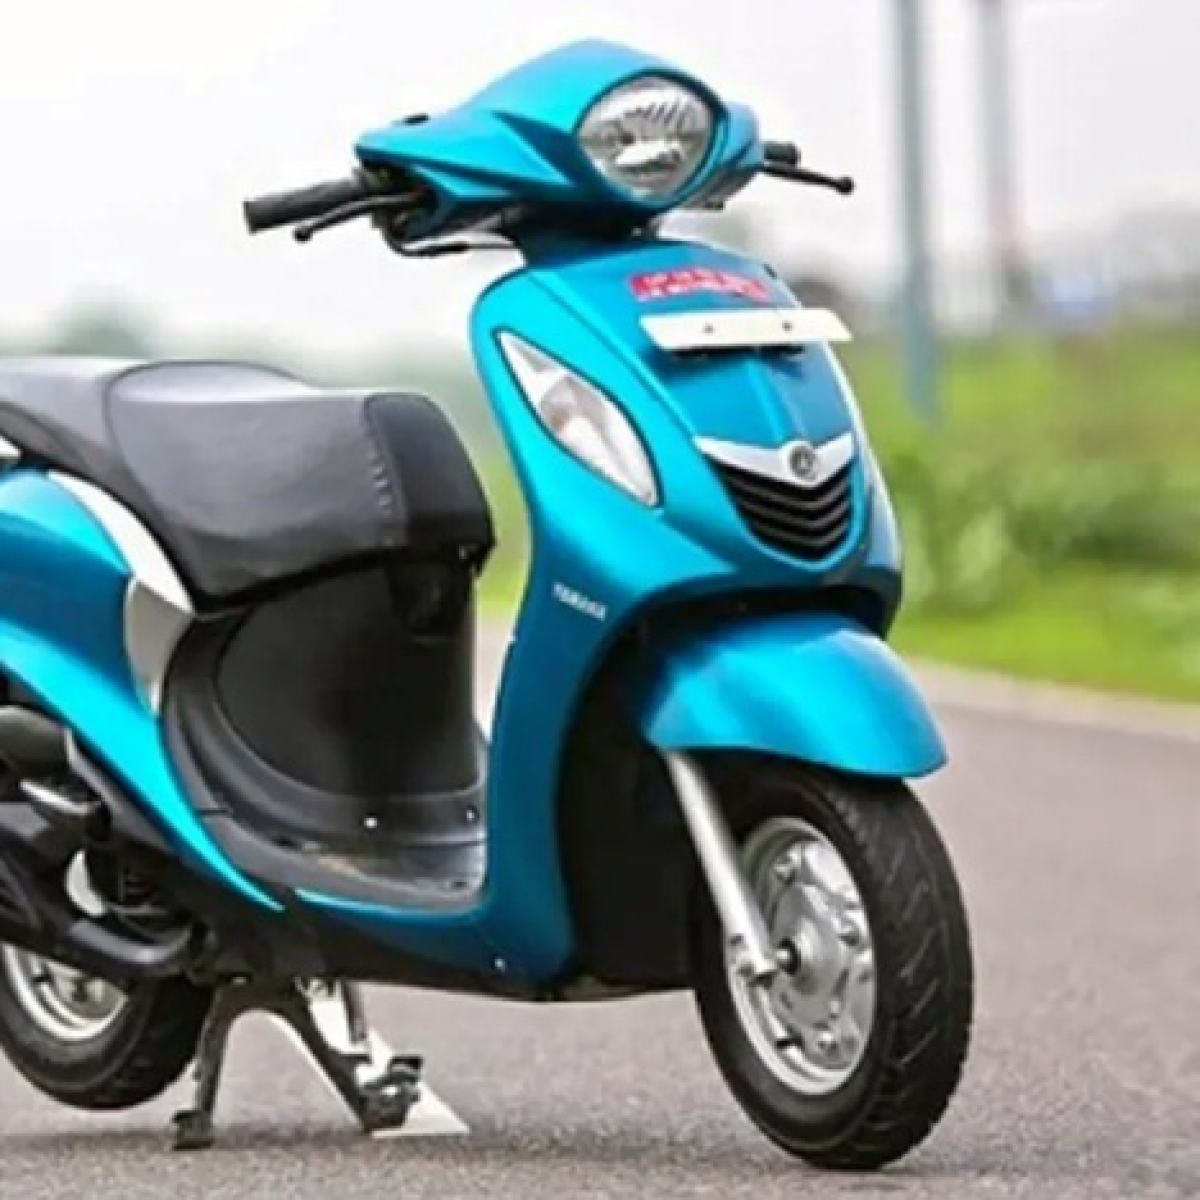 Delhi man riding Rs 15,000 scooter fined slapped with Rs 23,000 fine for traffic-related violations